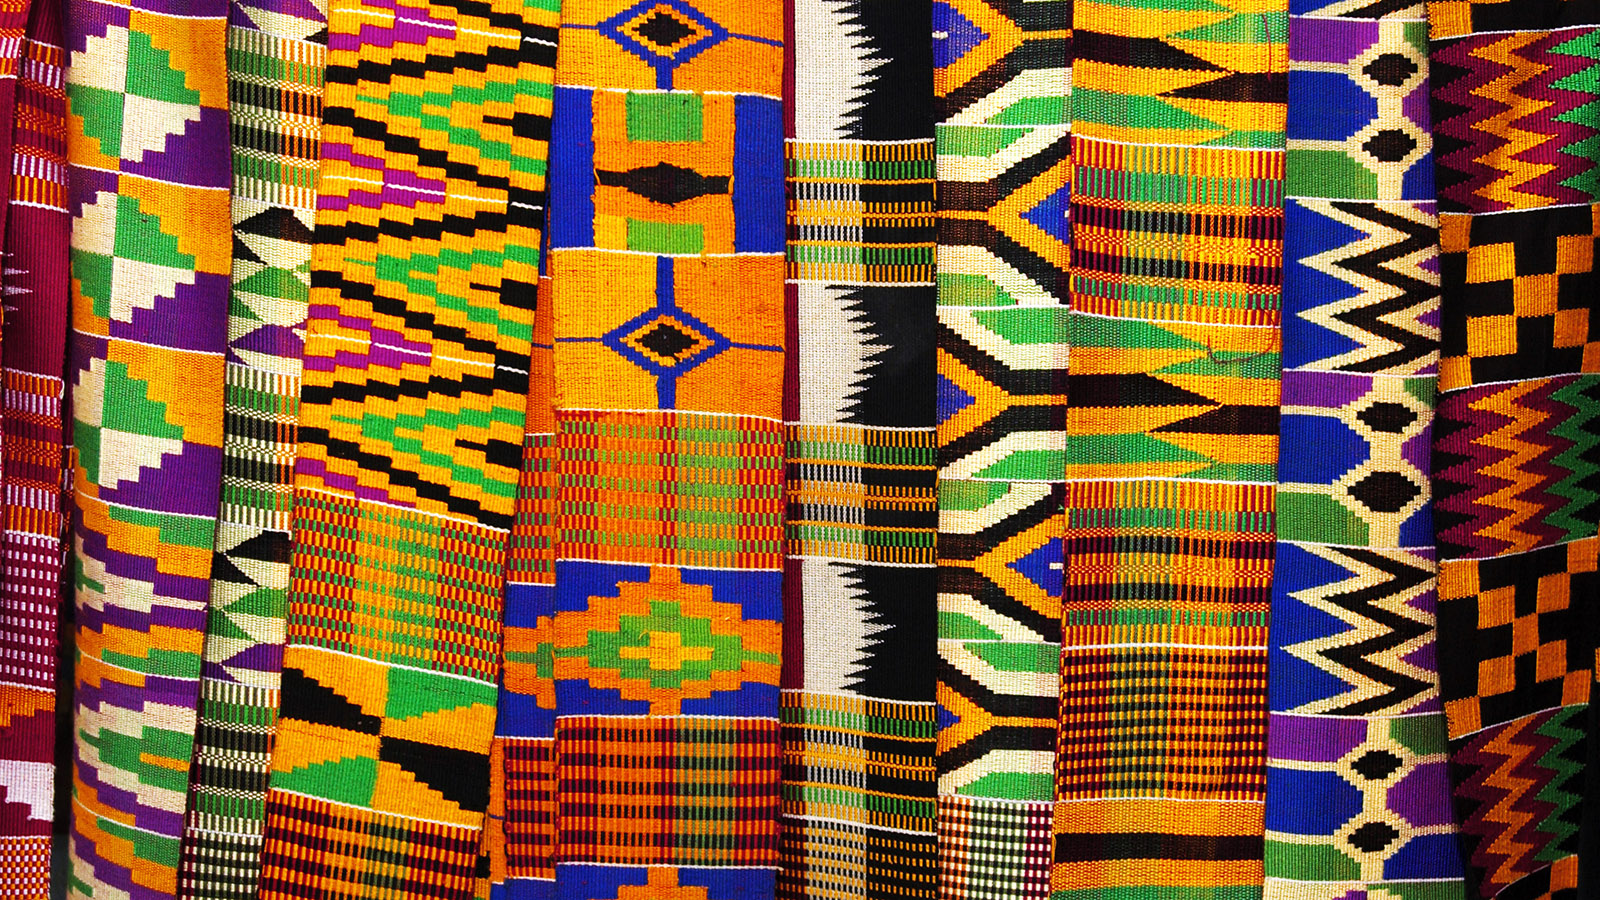 Weaving the Story of Kente Cloth, a Historic West African Fabric